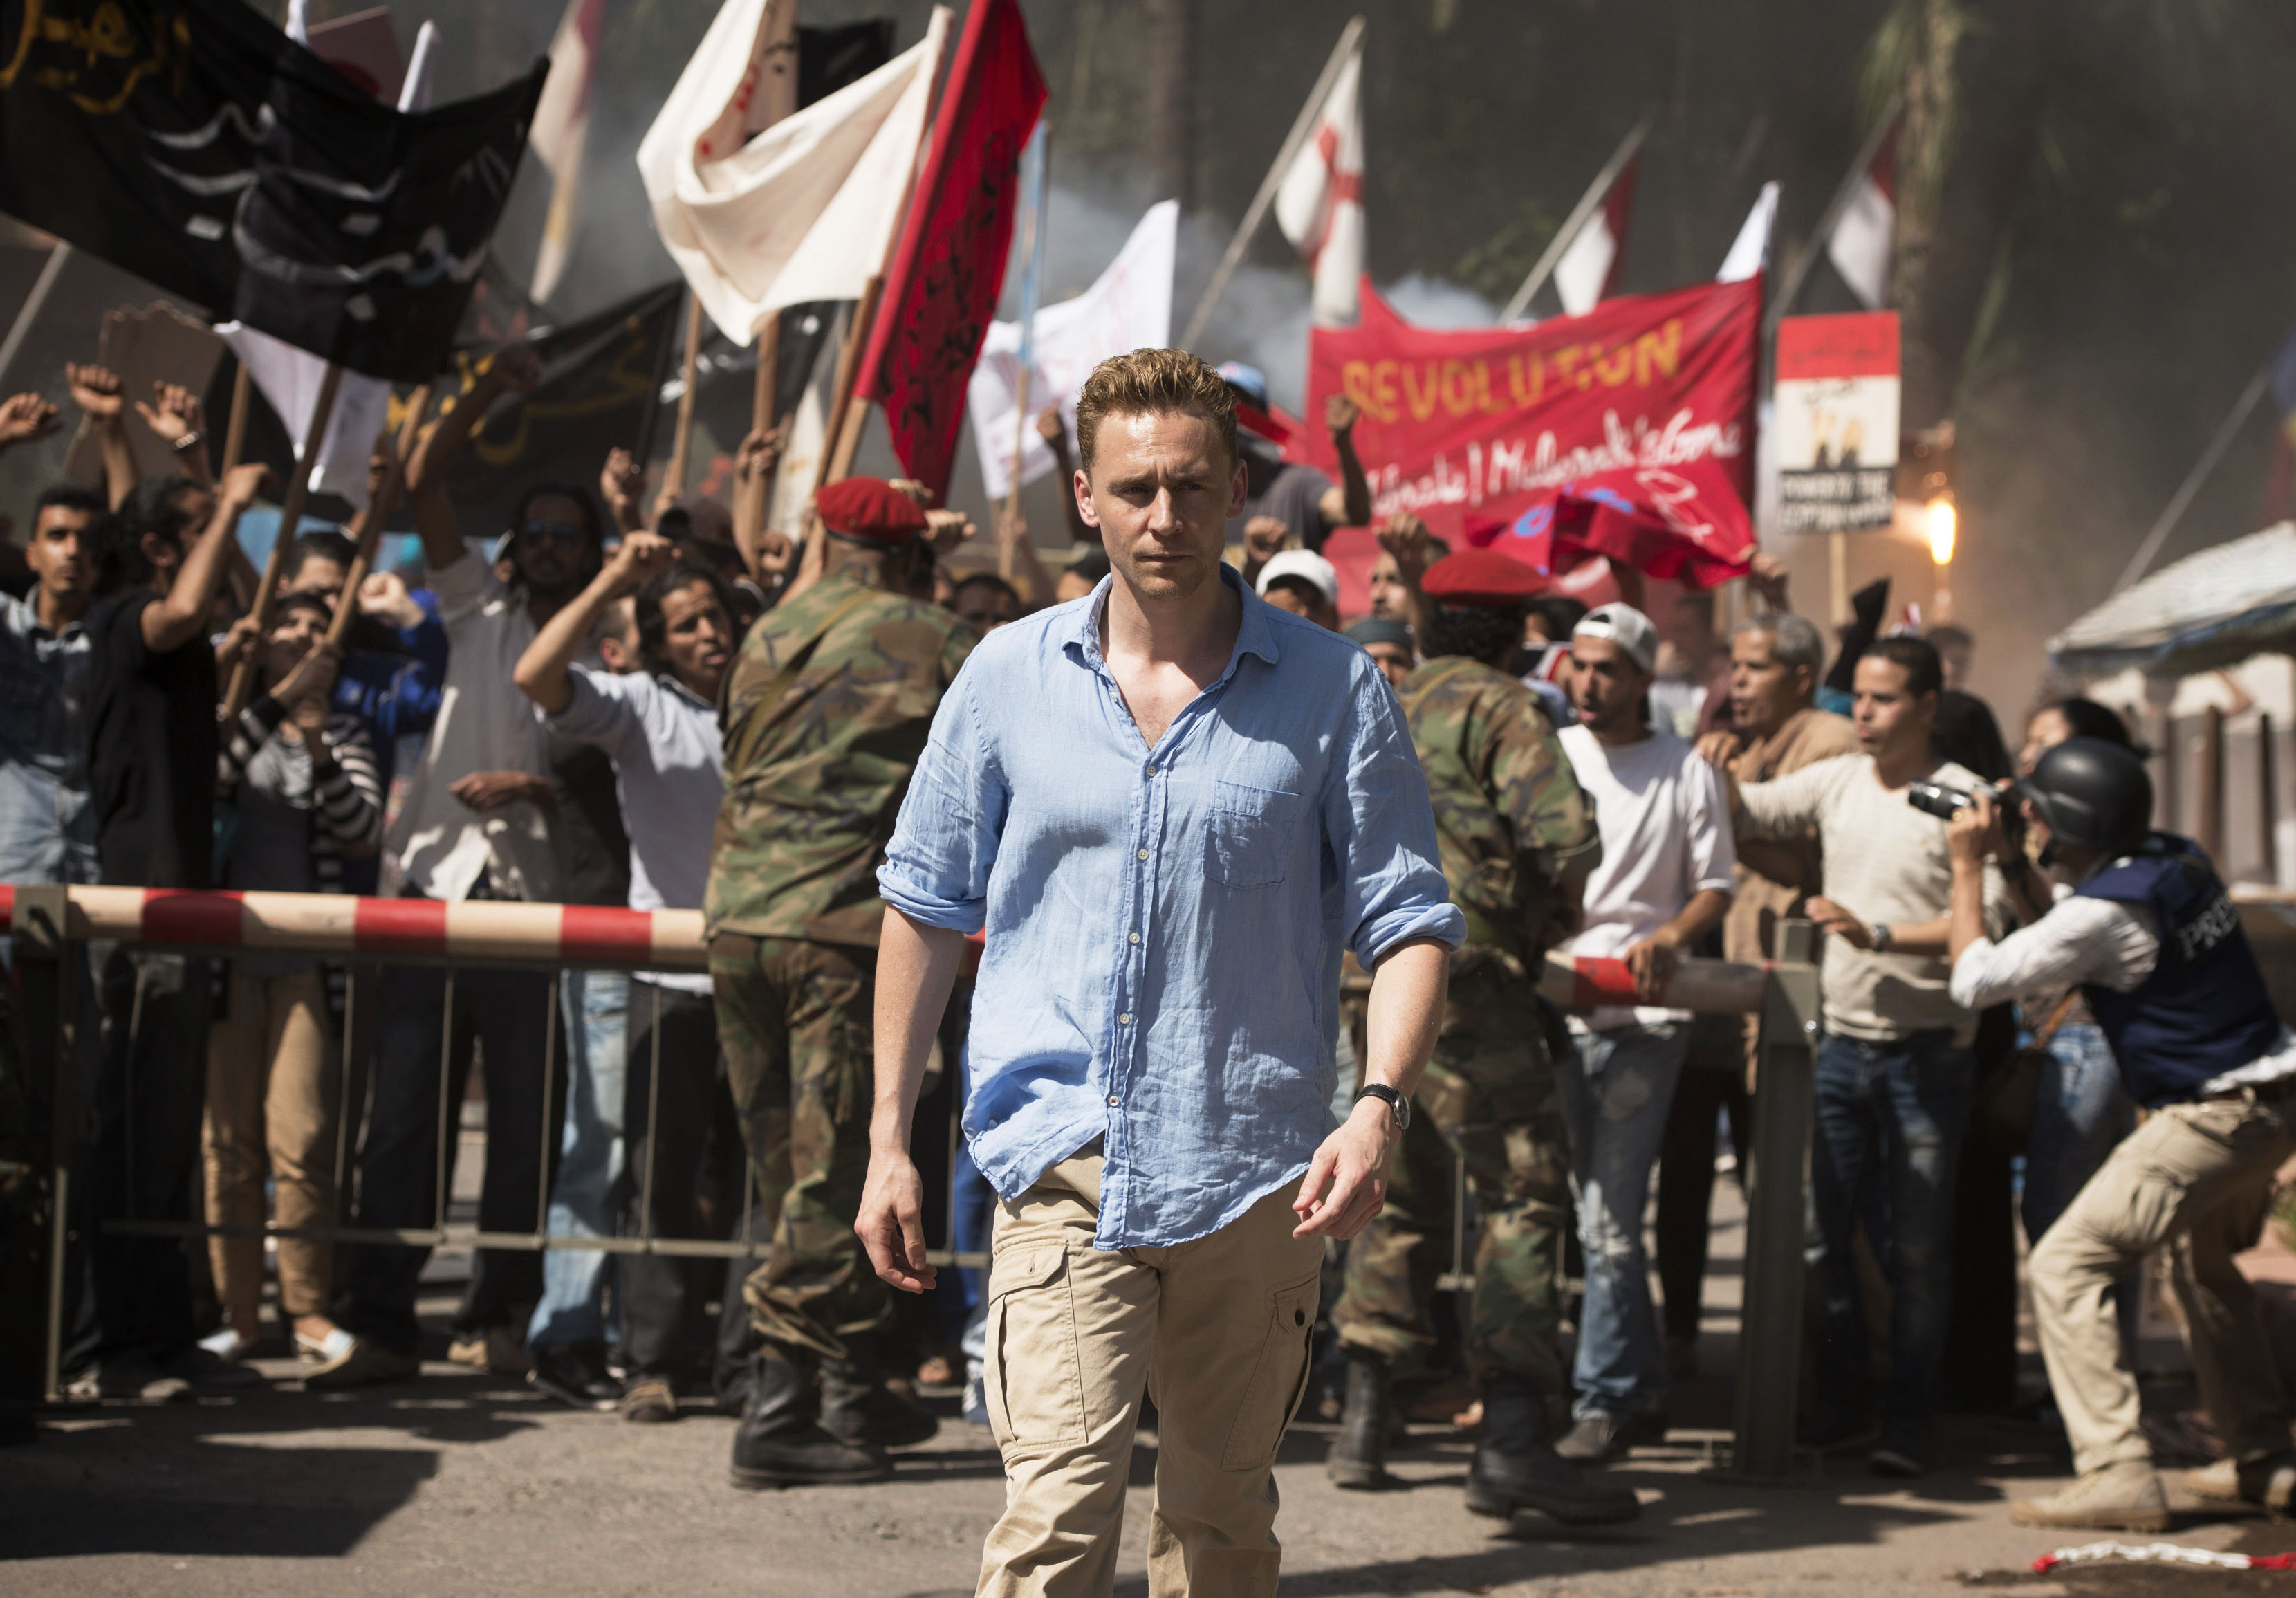 Programme Name: The Night Manager - TX: n/a - Episode: The Night Manager (No. Ep 1) - Picture Shows: Jonathan Pine (TOM HIDDLESTON) - (C) The Ink Factory - Photographer: Des Willie